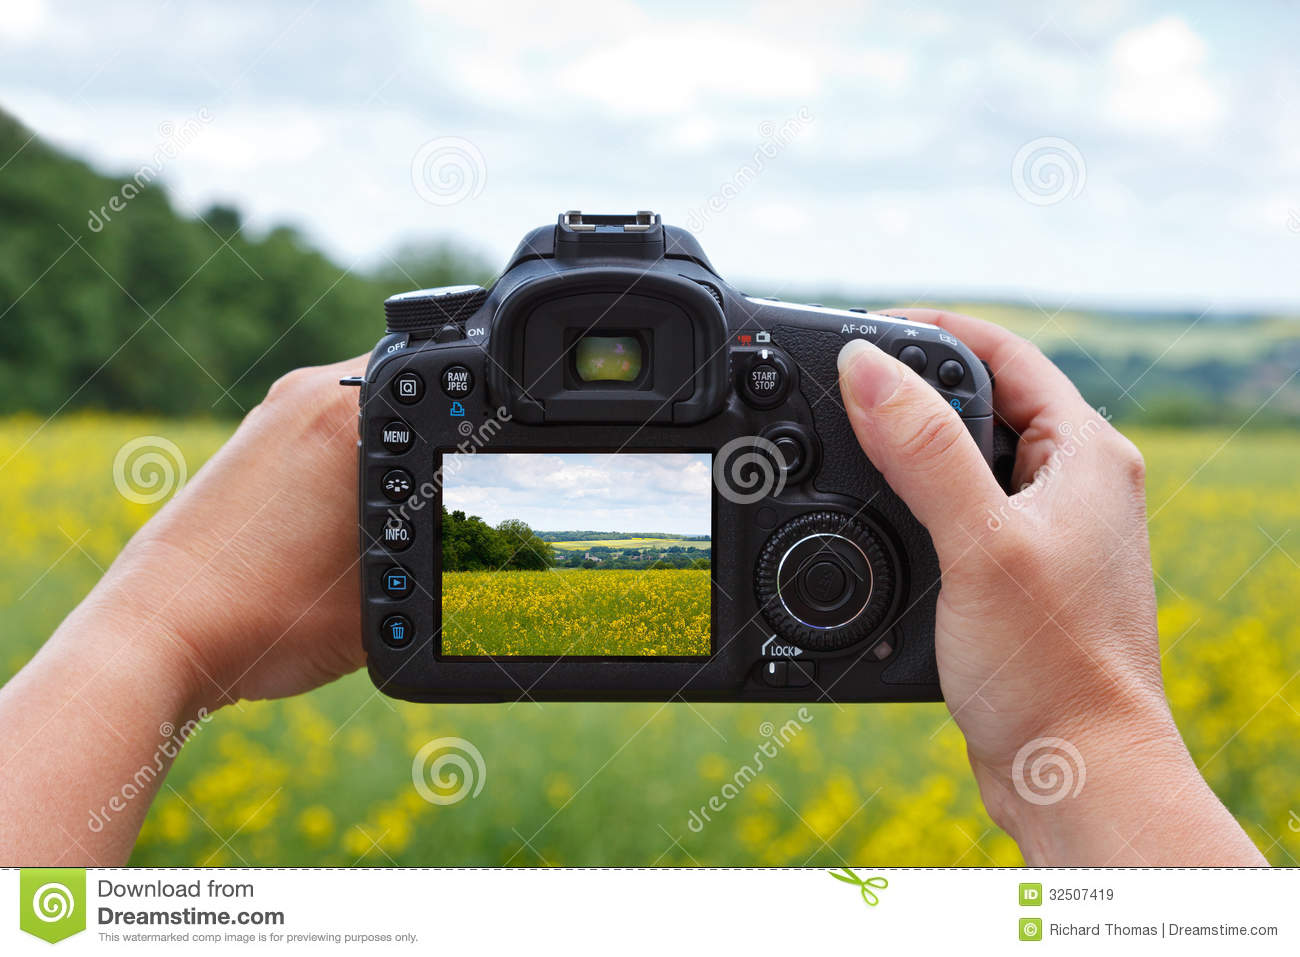 Camera How To Work A Dslr Camera dslr camera stock photos images pictures 12752 using a to take photo royalty free images